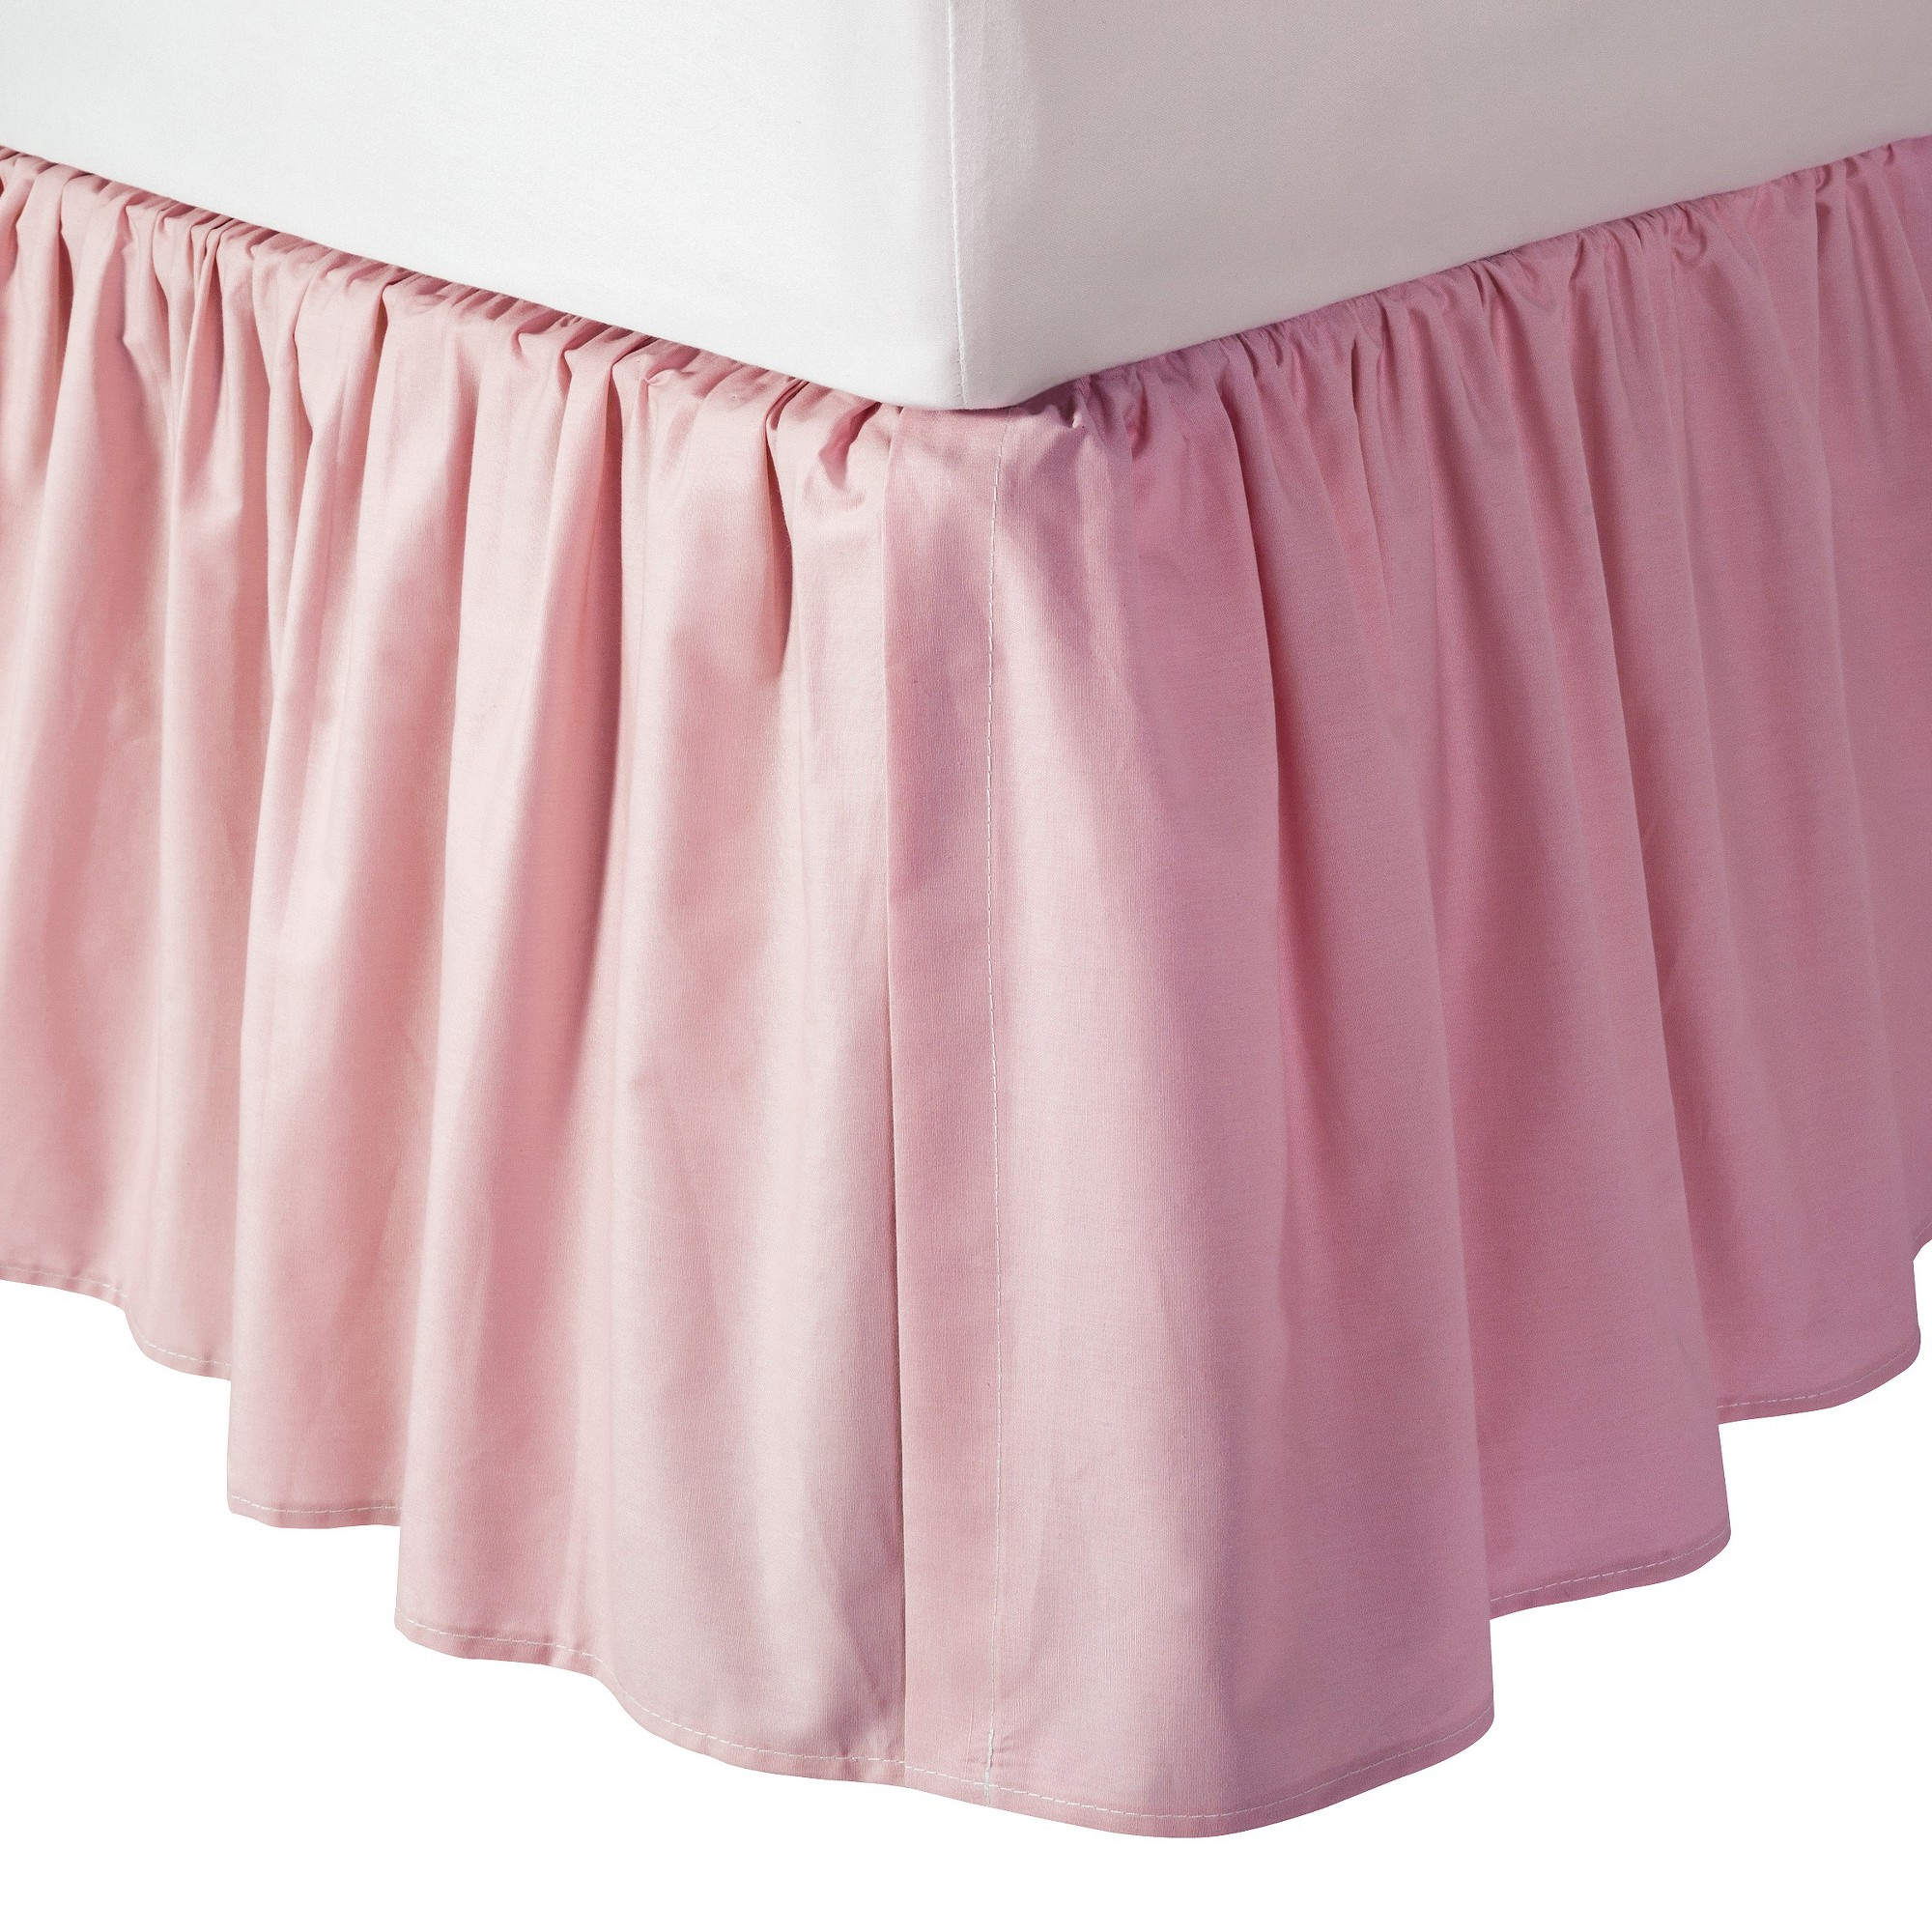 Tl Care 100 Cotton Percale Dust Ruffle Pink Crib Bed Skirt Pink Crib Crib Skirts